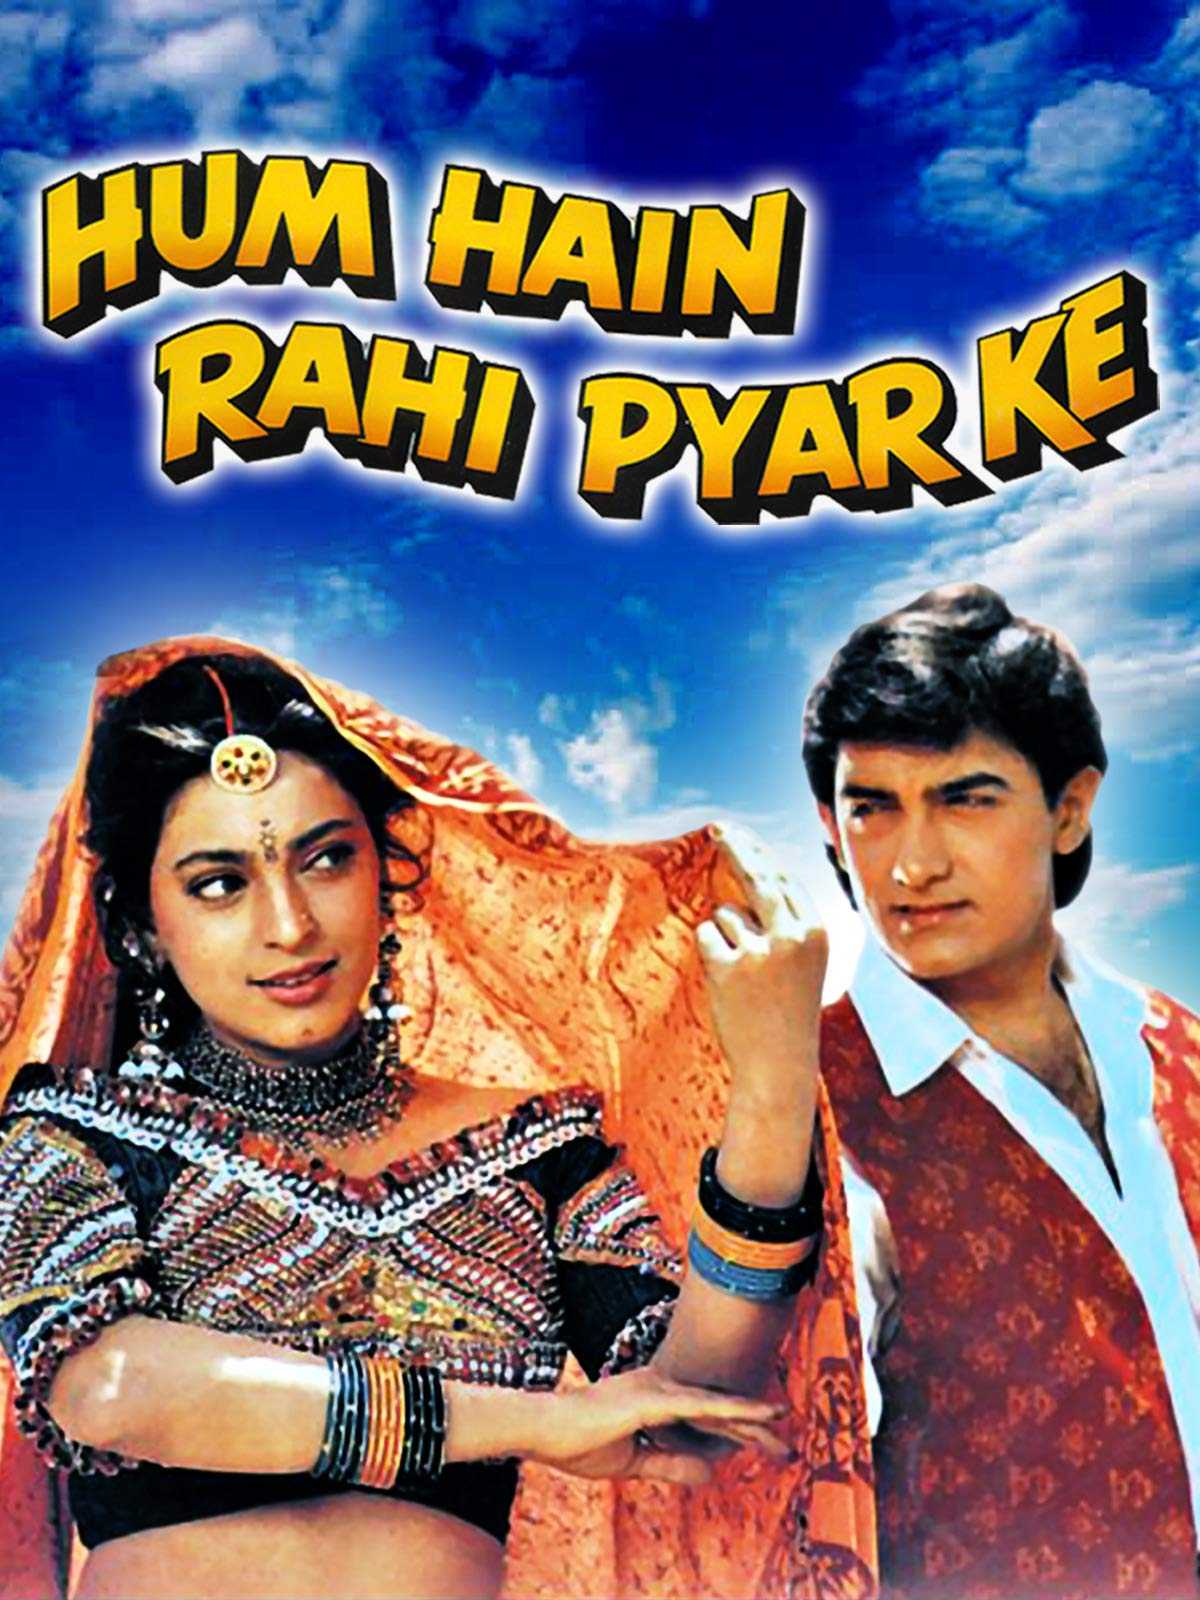 Hum Hain Rahi Pyar Ke 1993 Hindi 1080p AMZN HDRip ESubs 1815MB Download